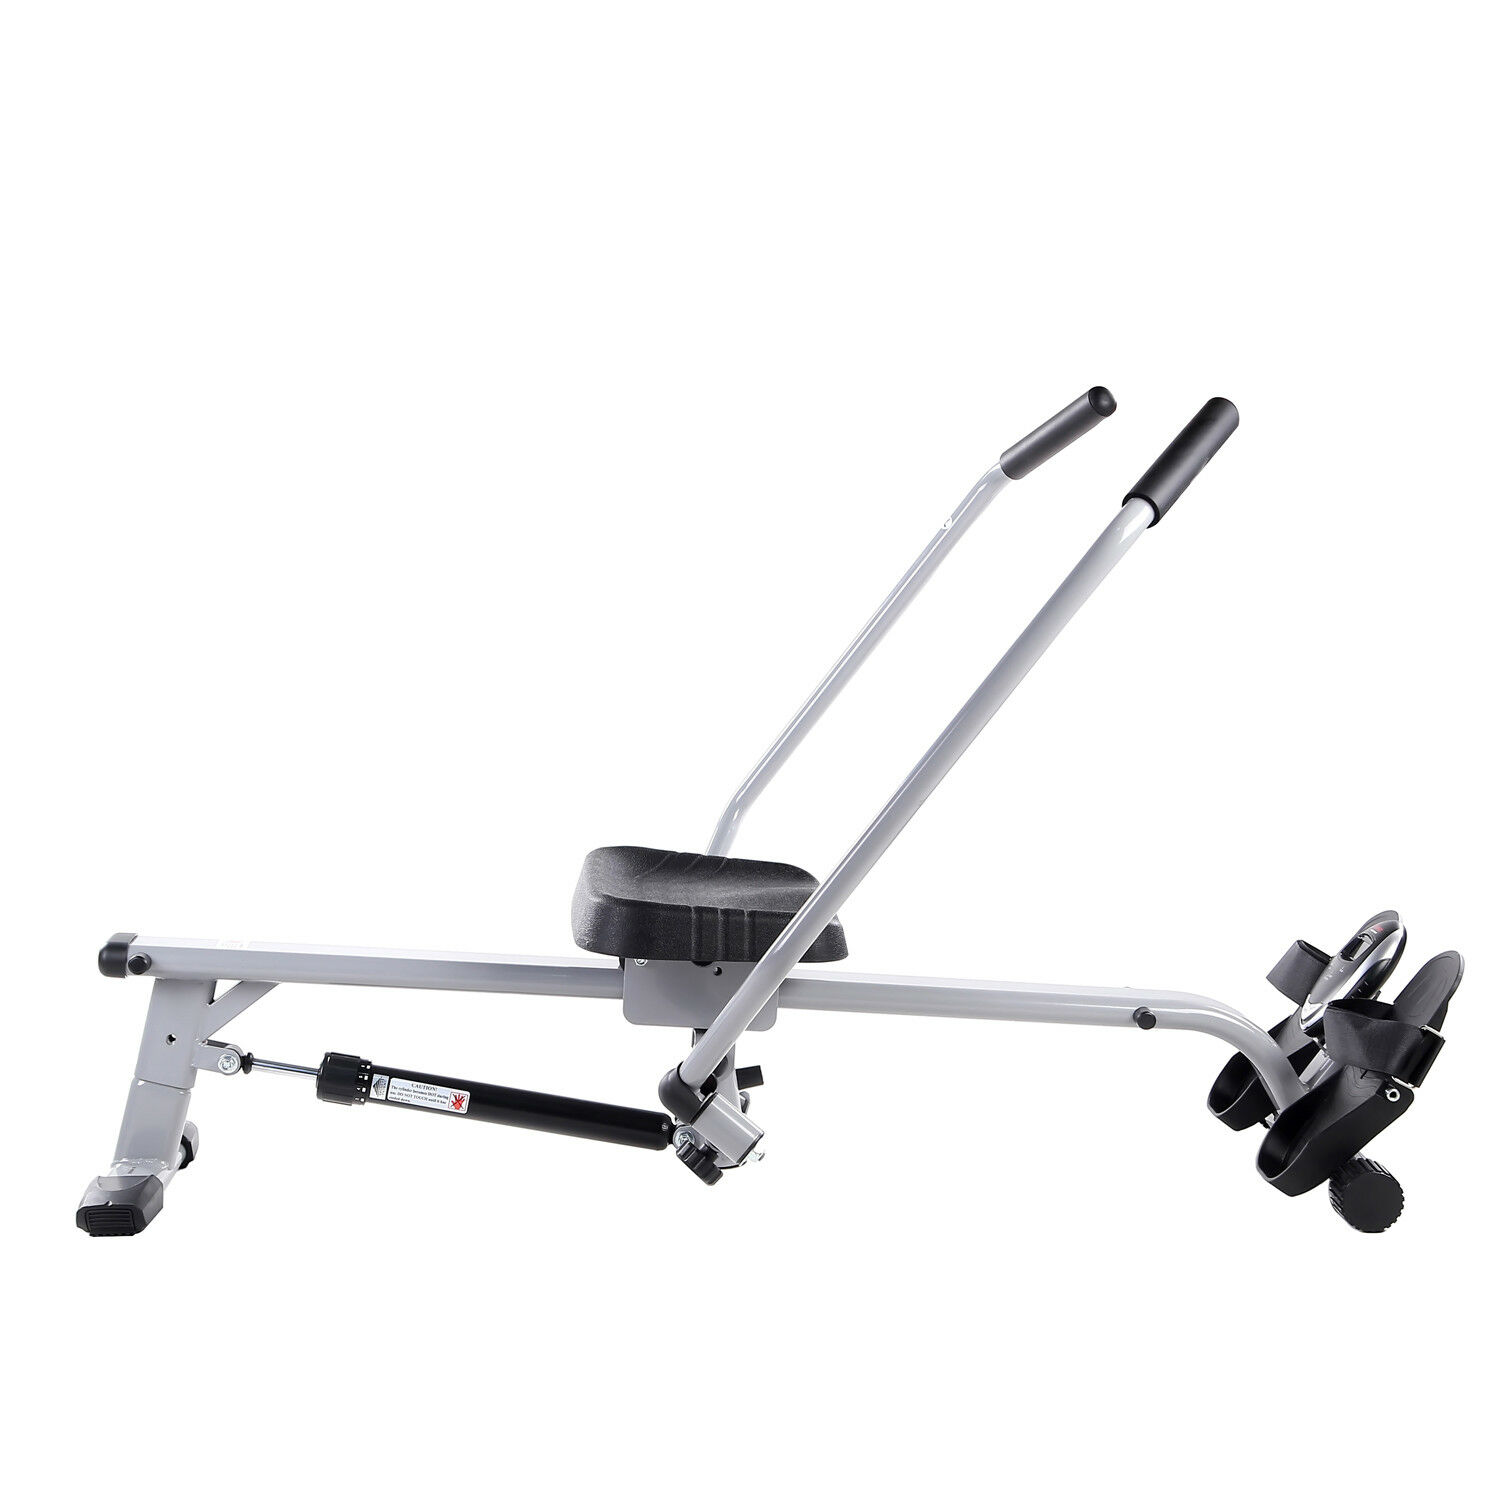 Sunny Health and Fitness Full Motion Rowing Machine Rower with 350lb Capacity an 2